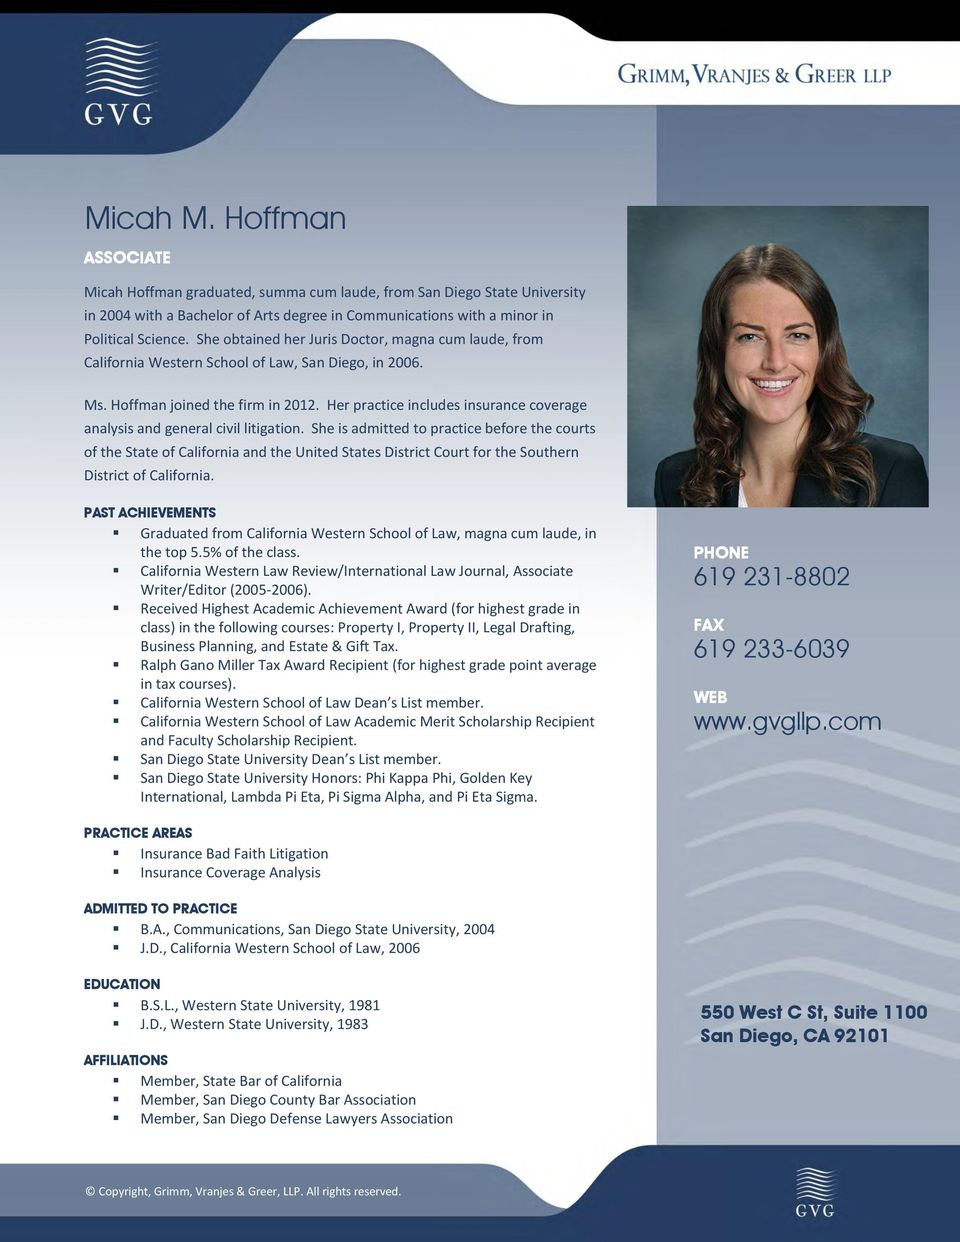 Her practice includes insurance coverage analysis and general civil litigation.